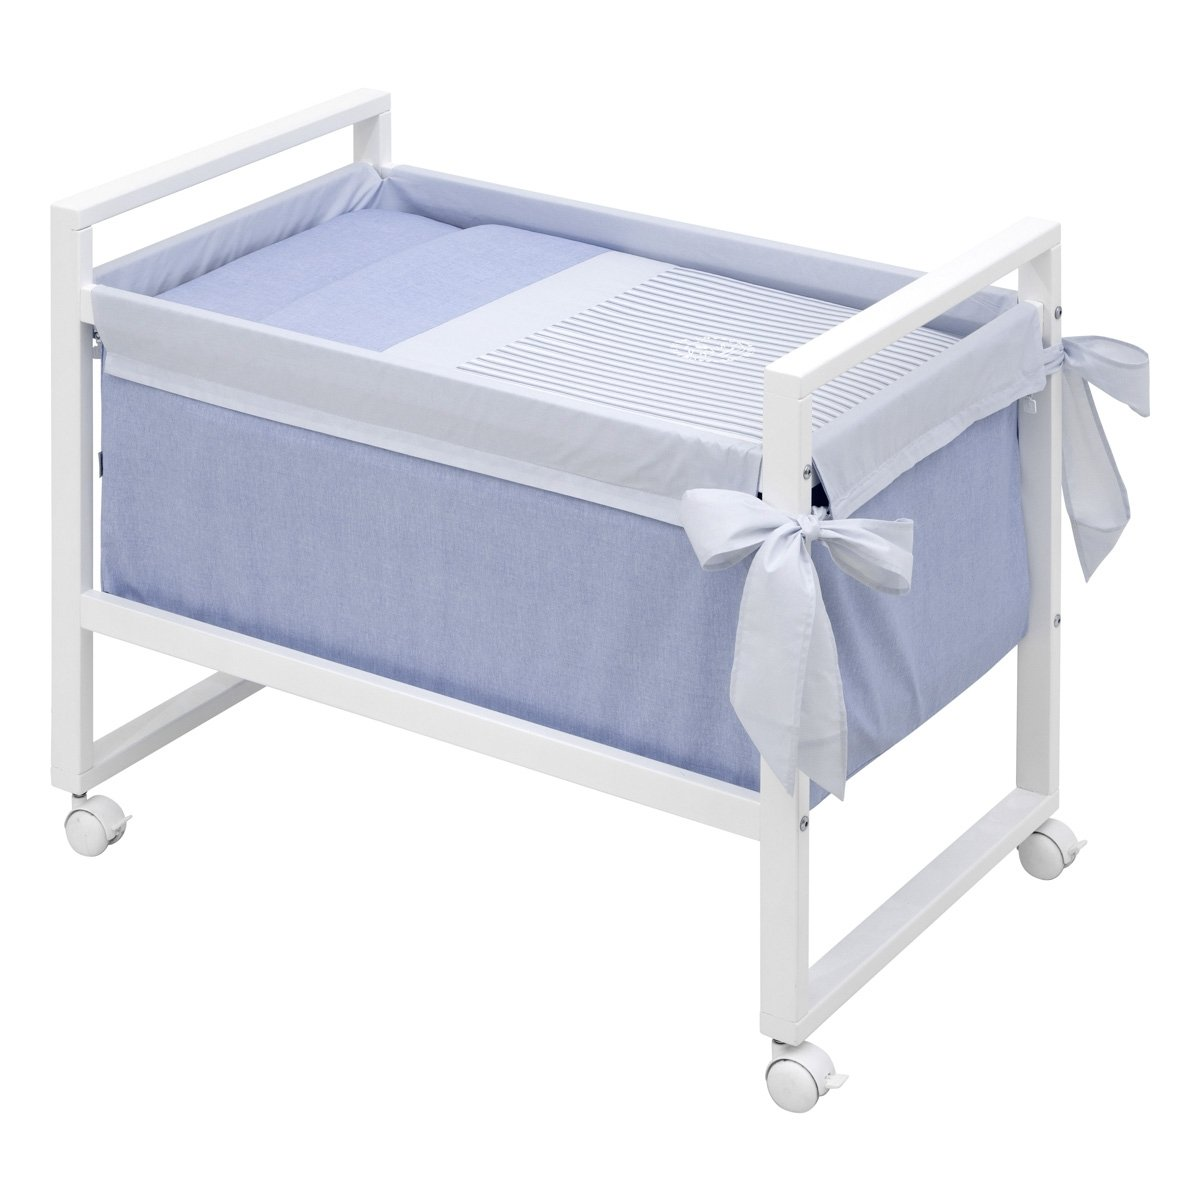 Small bed next denim blue 55x88x72 cm cambrass - Bed cm ...